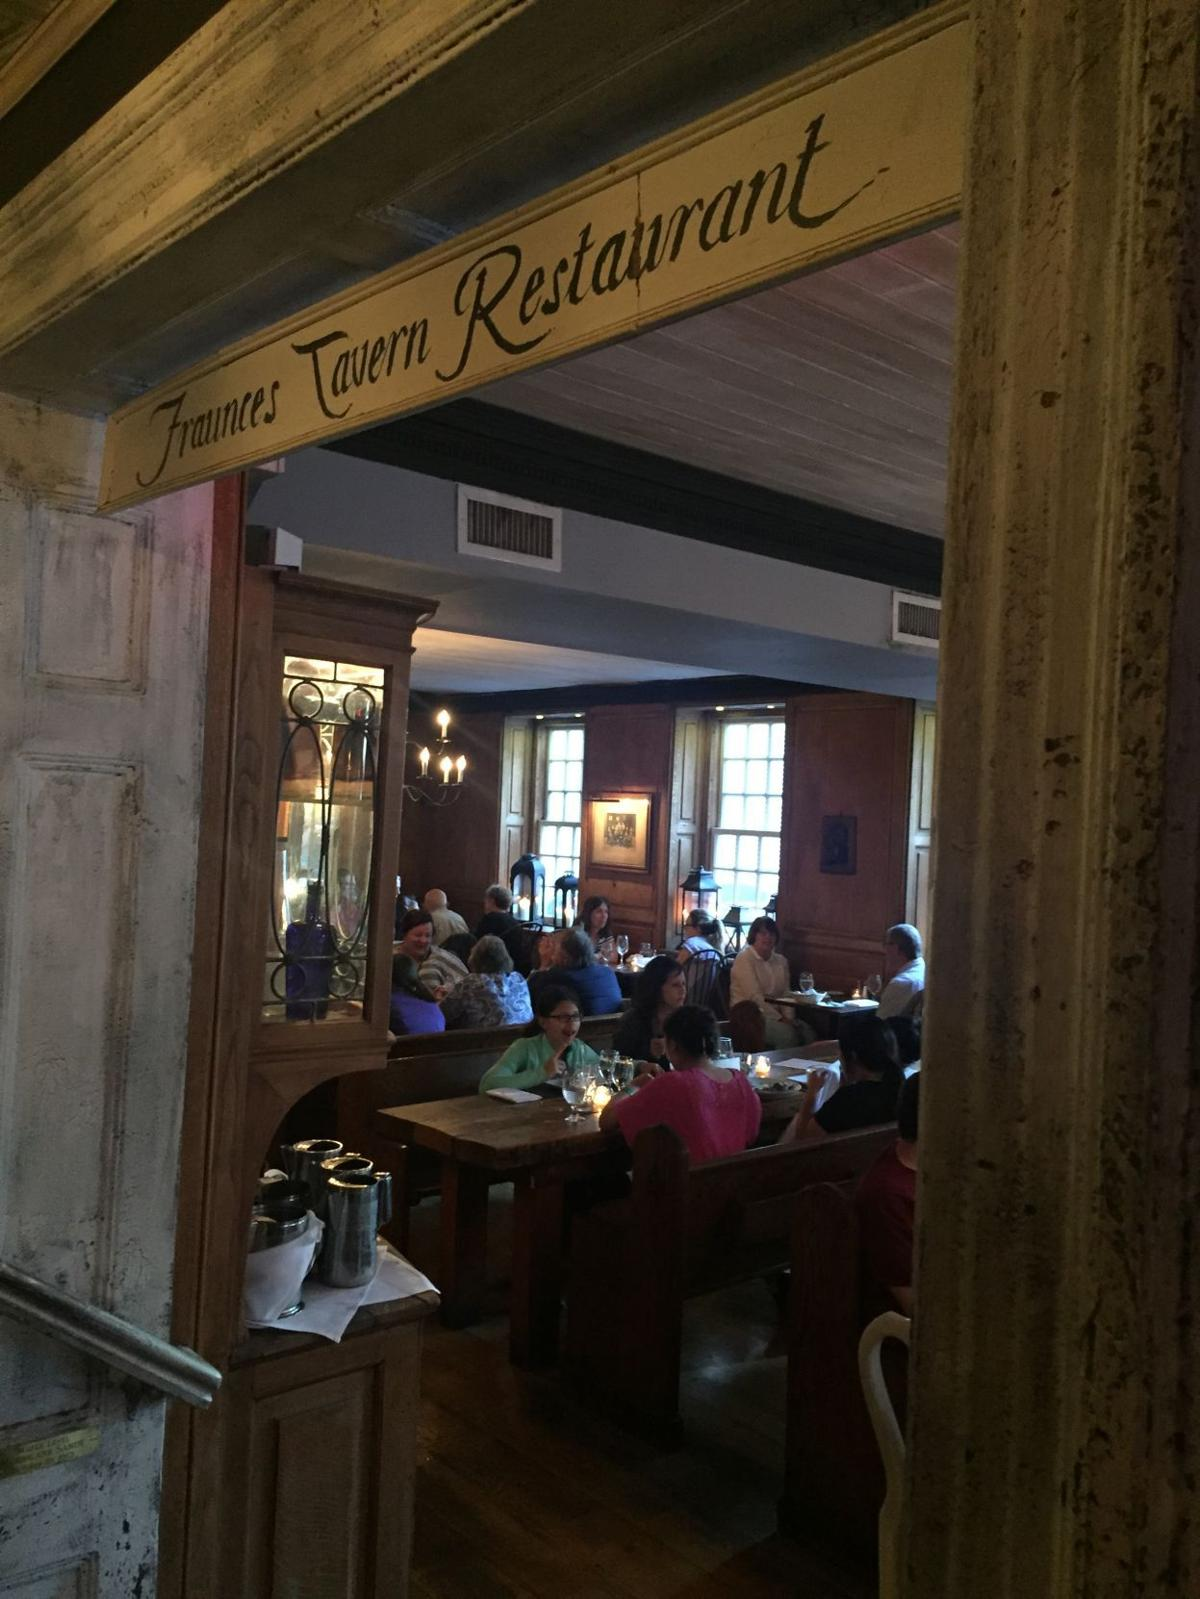 Will Travel for Food: A trip to Fraunces Tavern